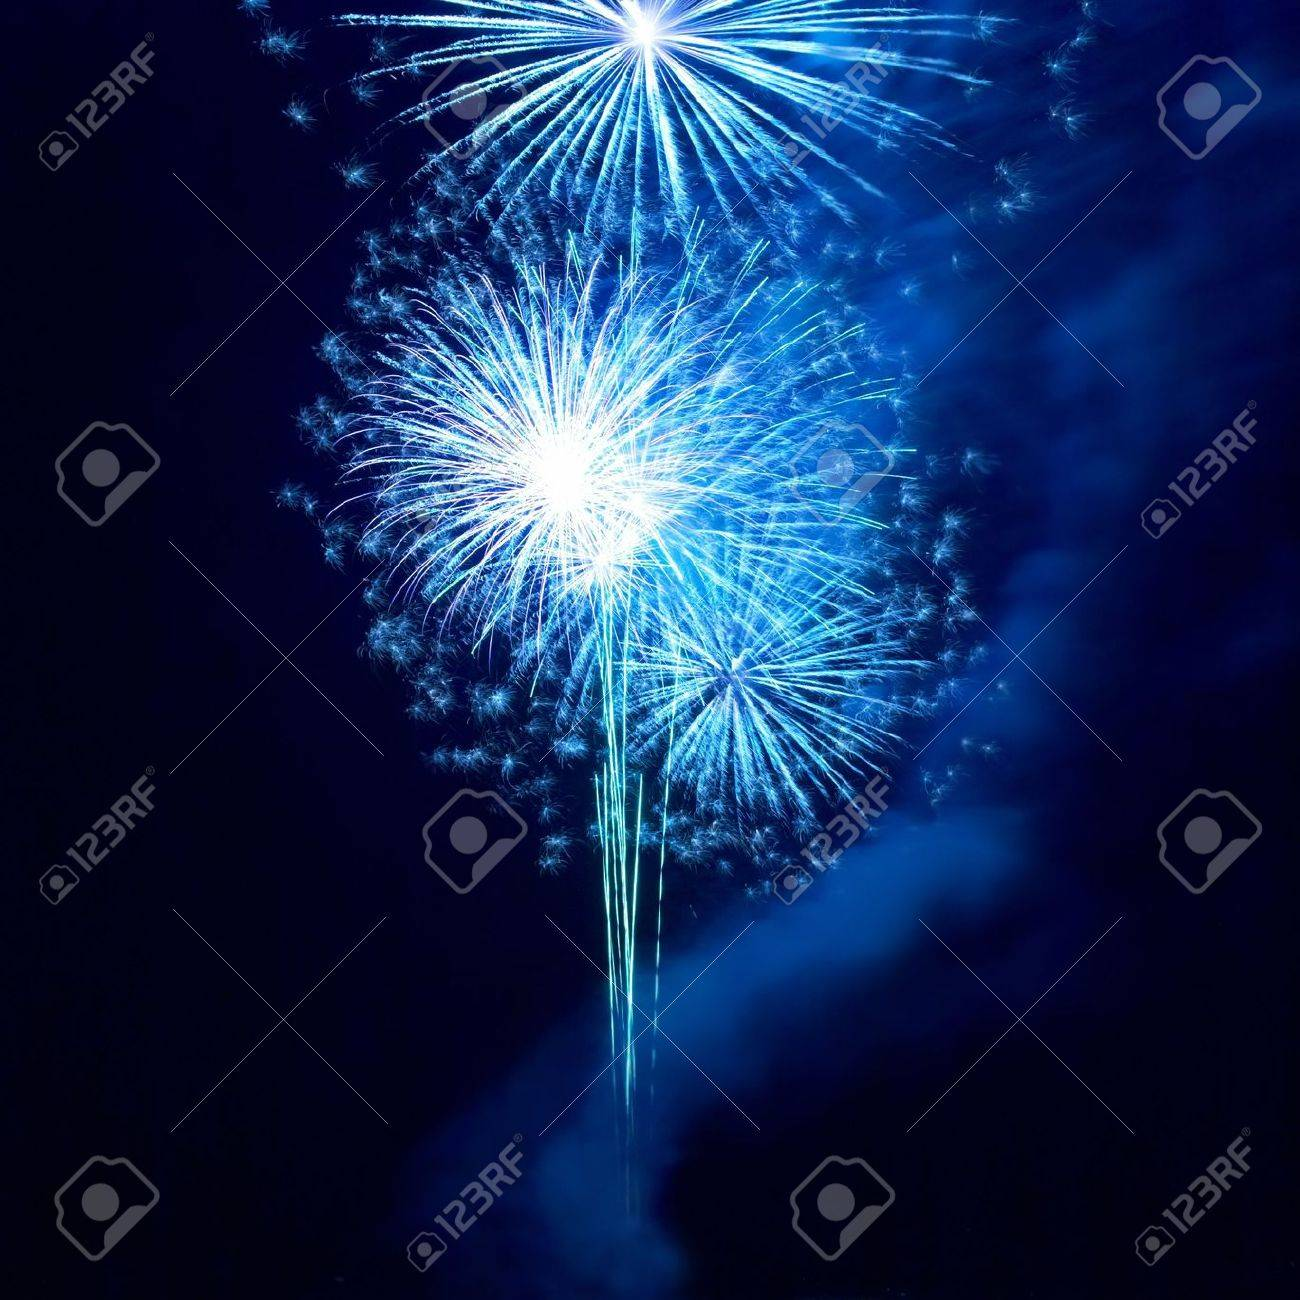 Fireworks, salute with the black sky background Stock Photo - 6113633